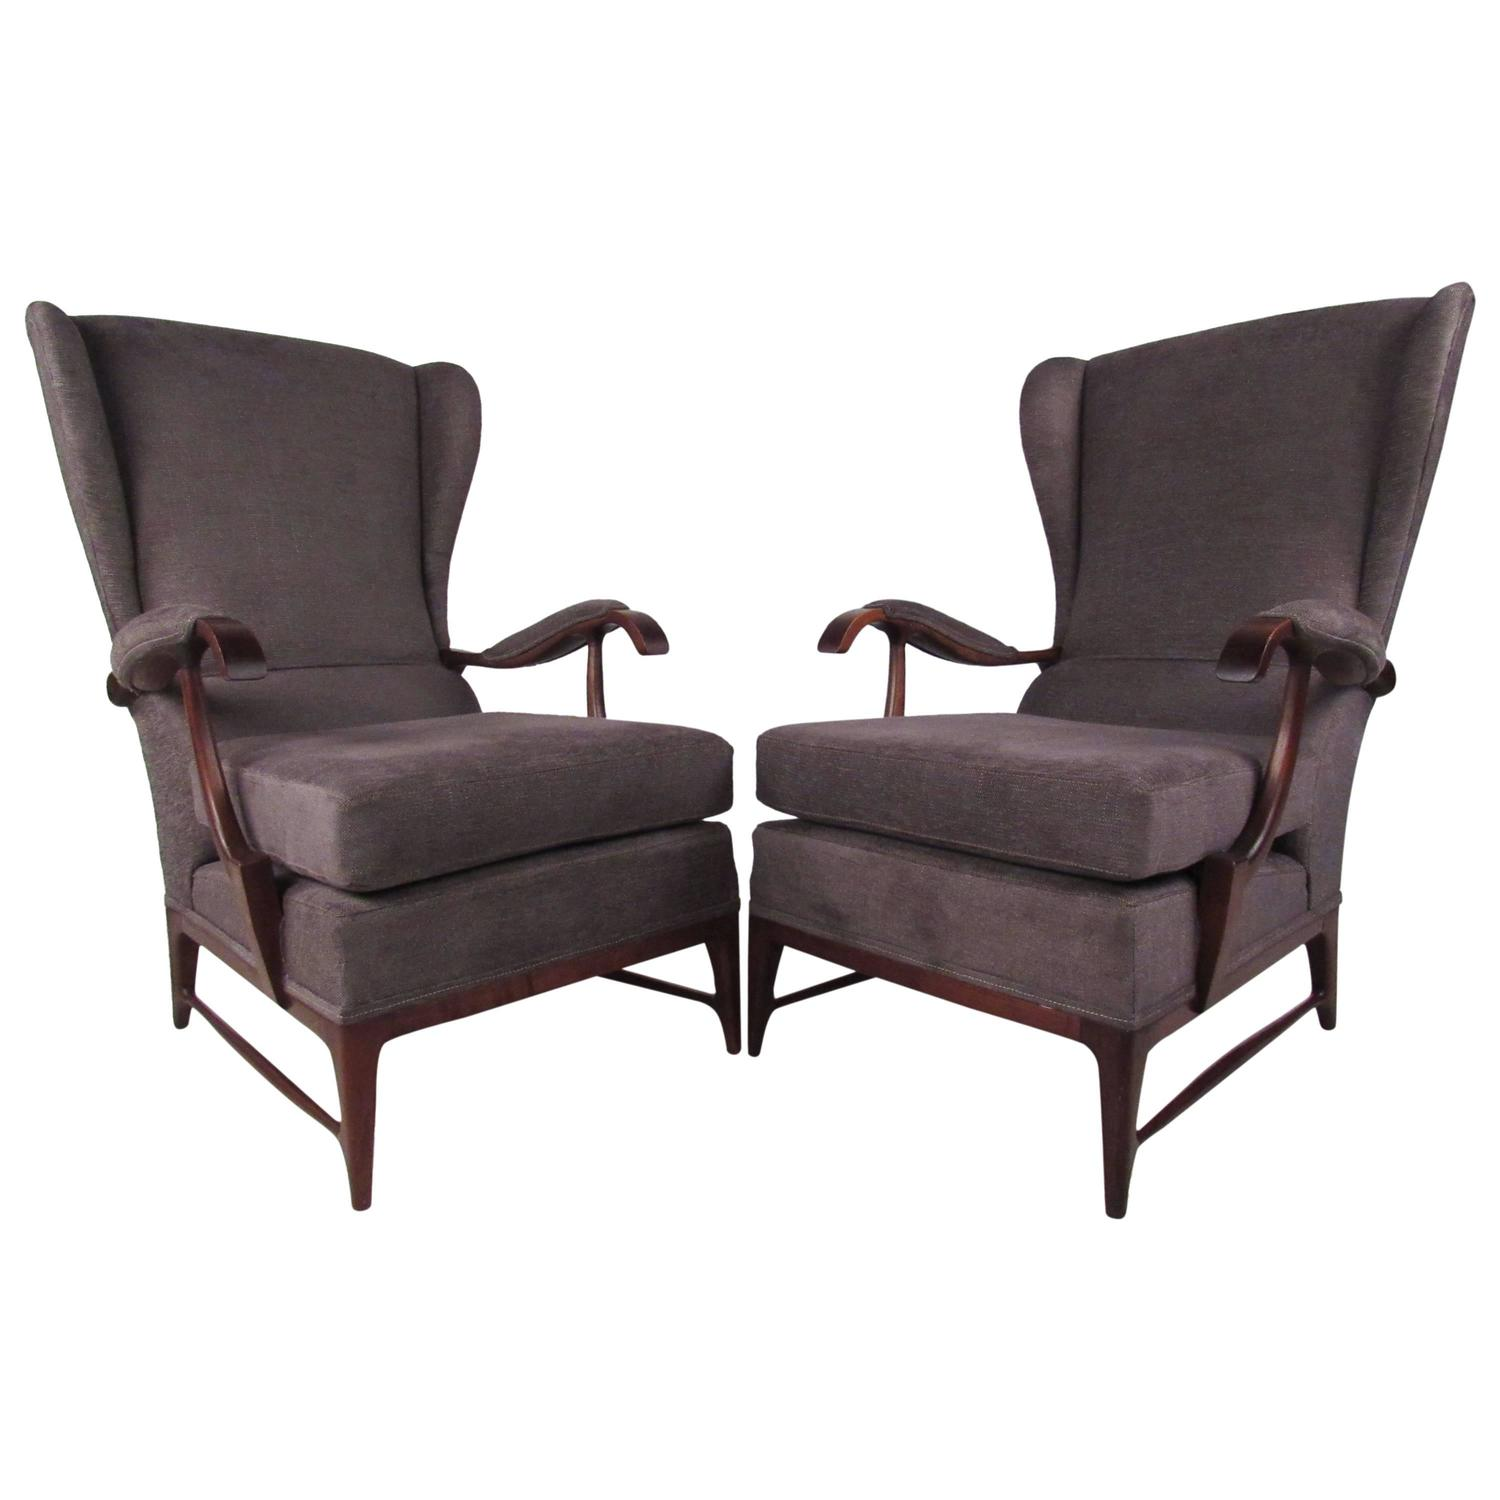 modern wingback chairs for sale revolving chair below 1000 pair of mid century paolo buffa lounge